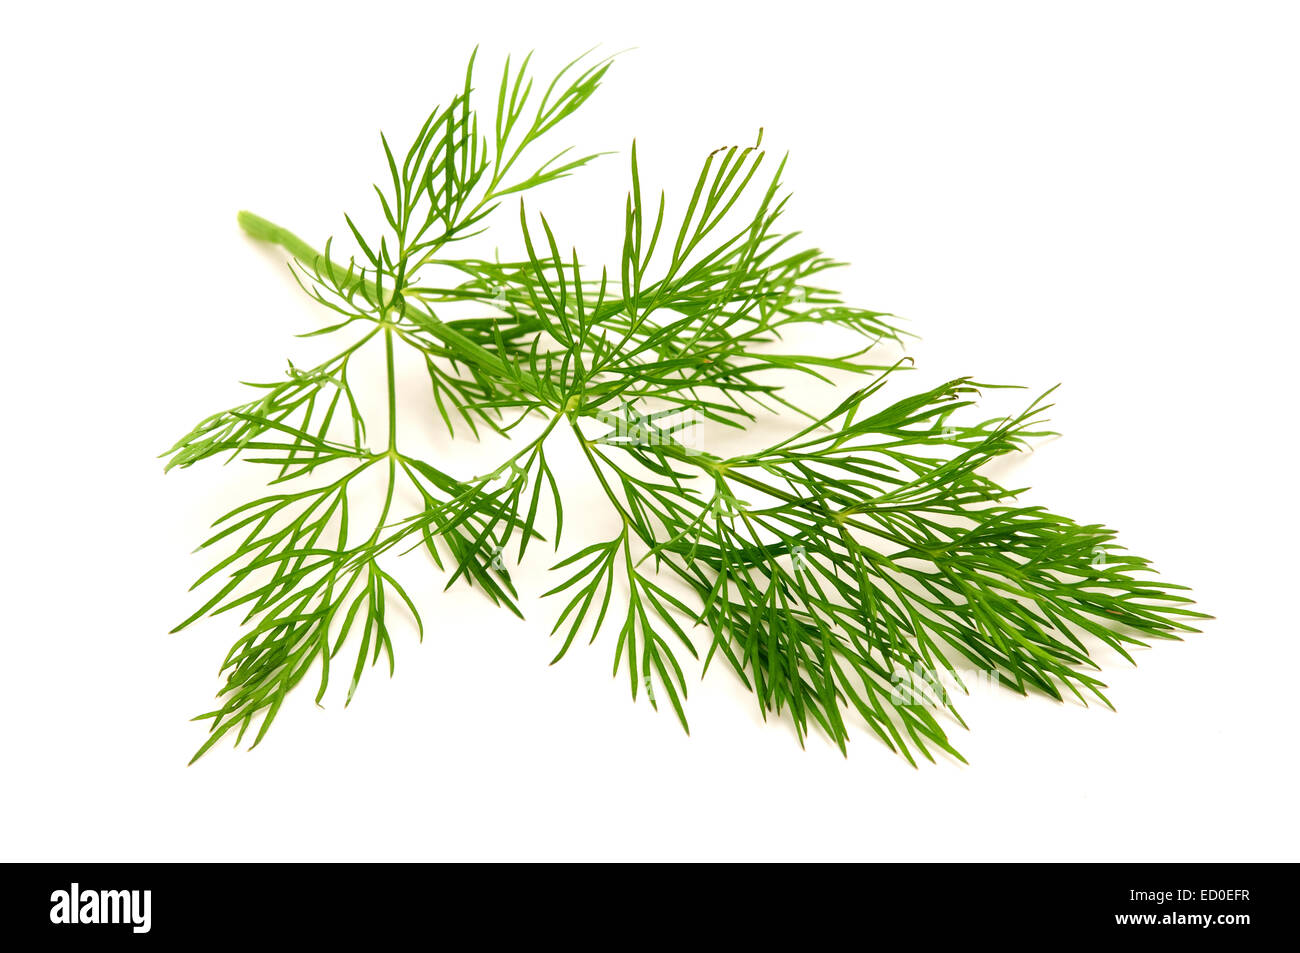 Dill on a white background - Stock Image